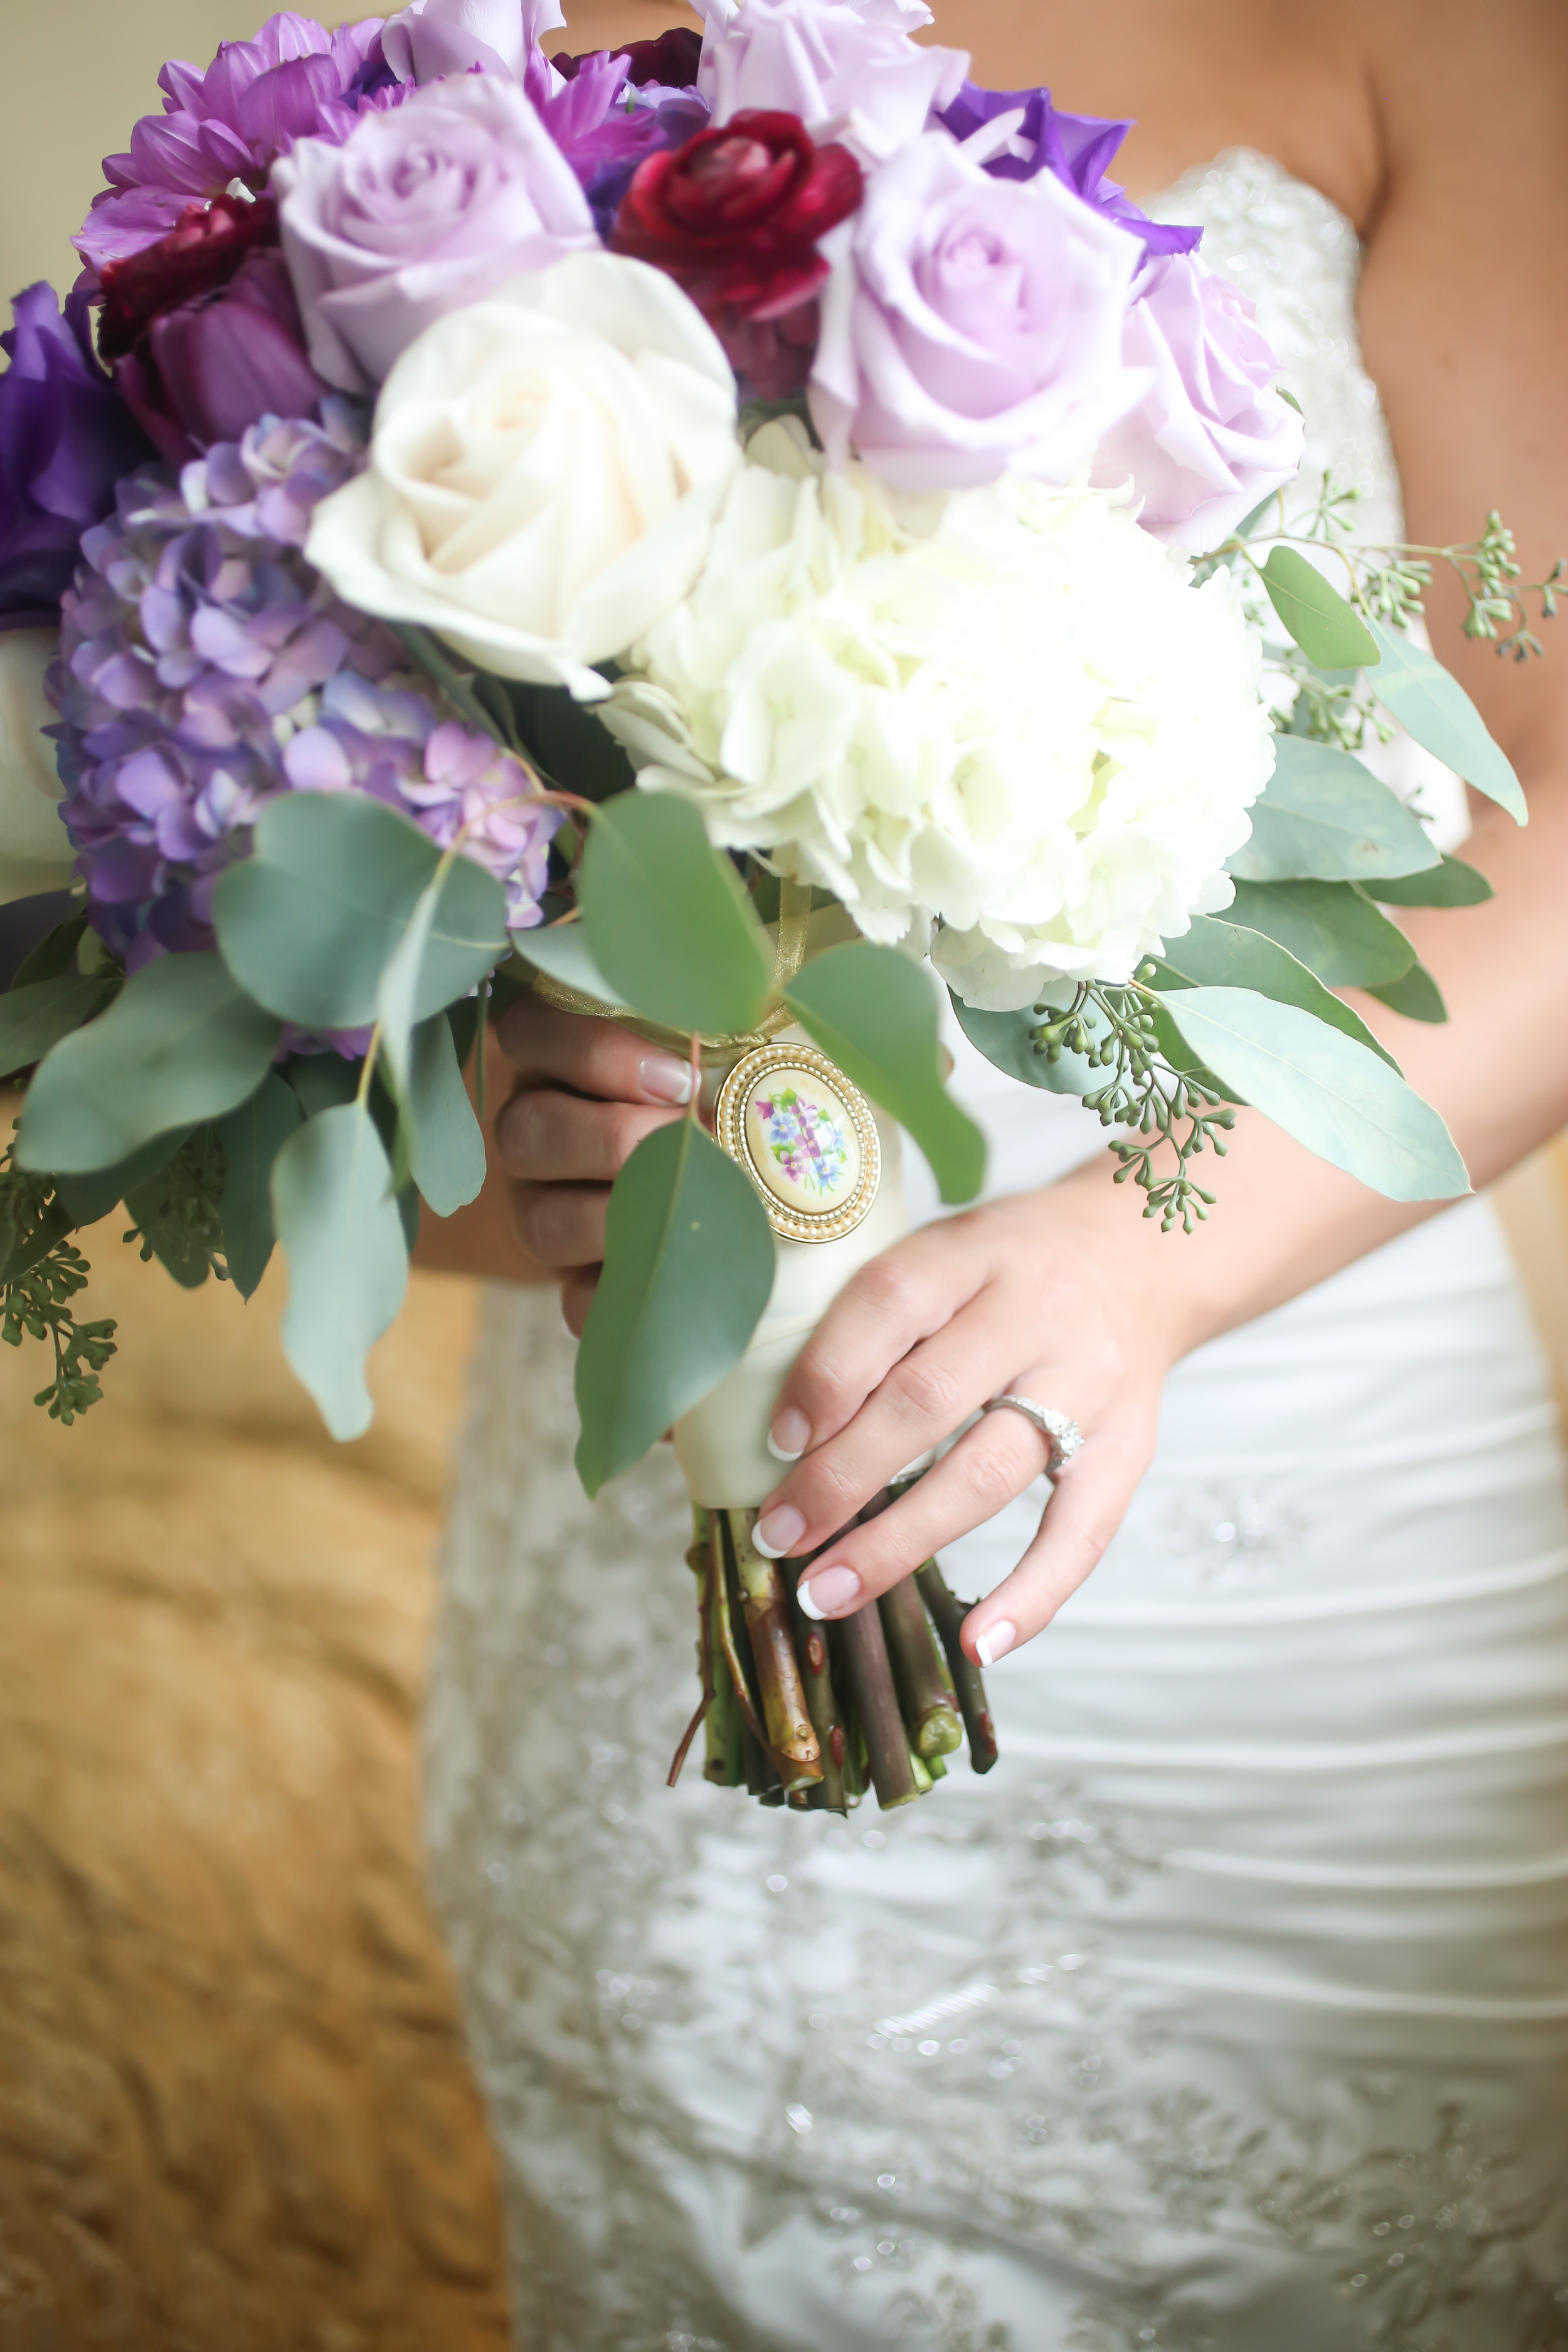 The bride's bouquet contained hydrangea, roses, chrysanthemums, tulips, ranunculus, and eucalyptus